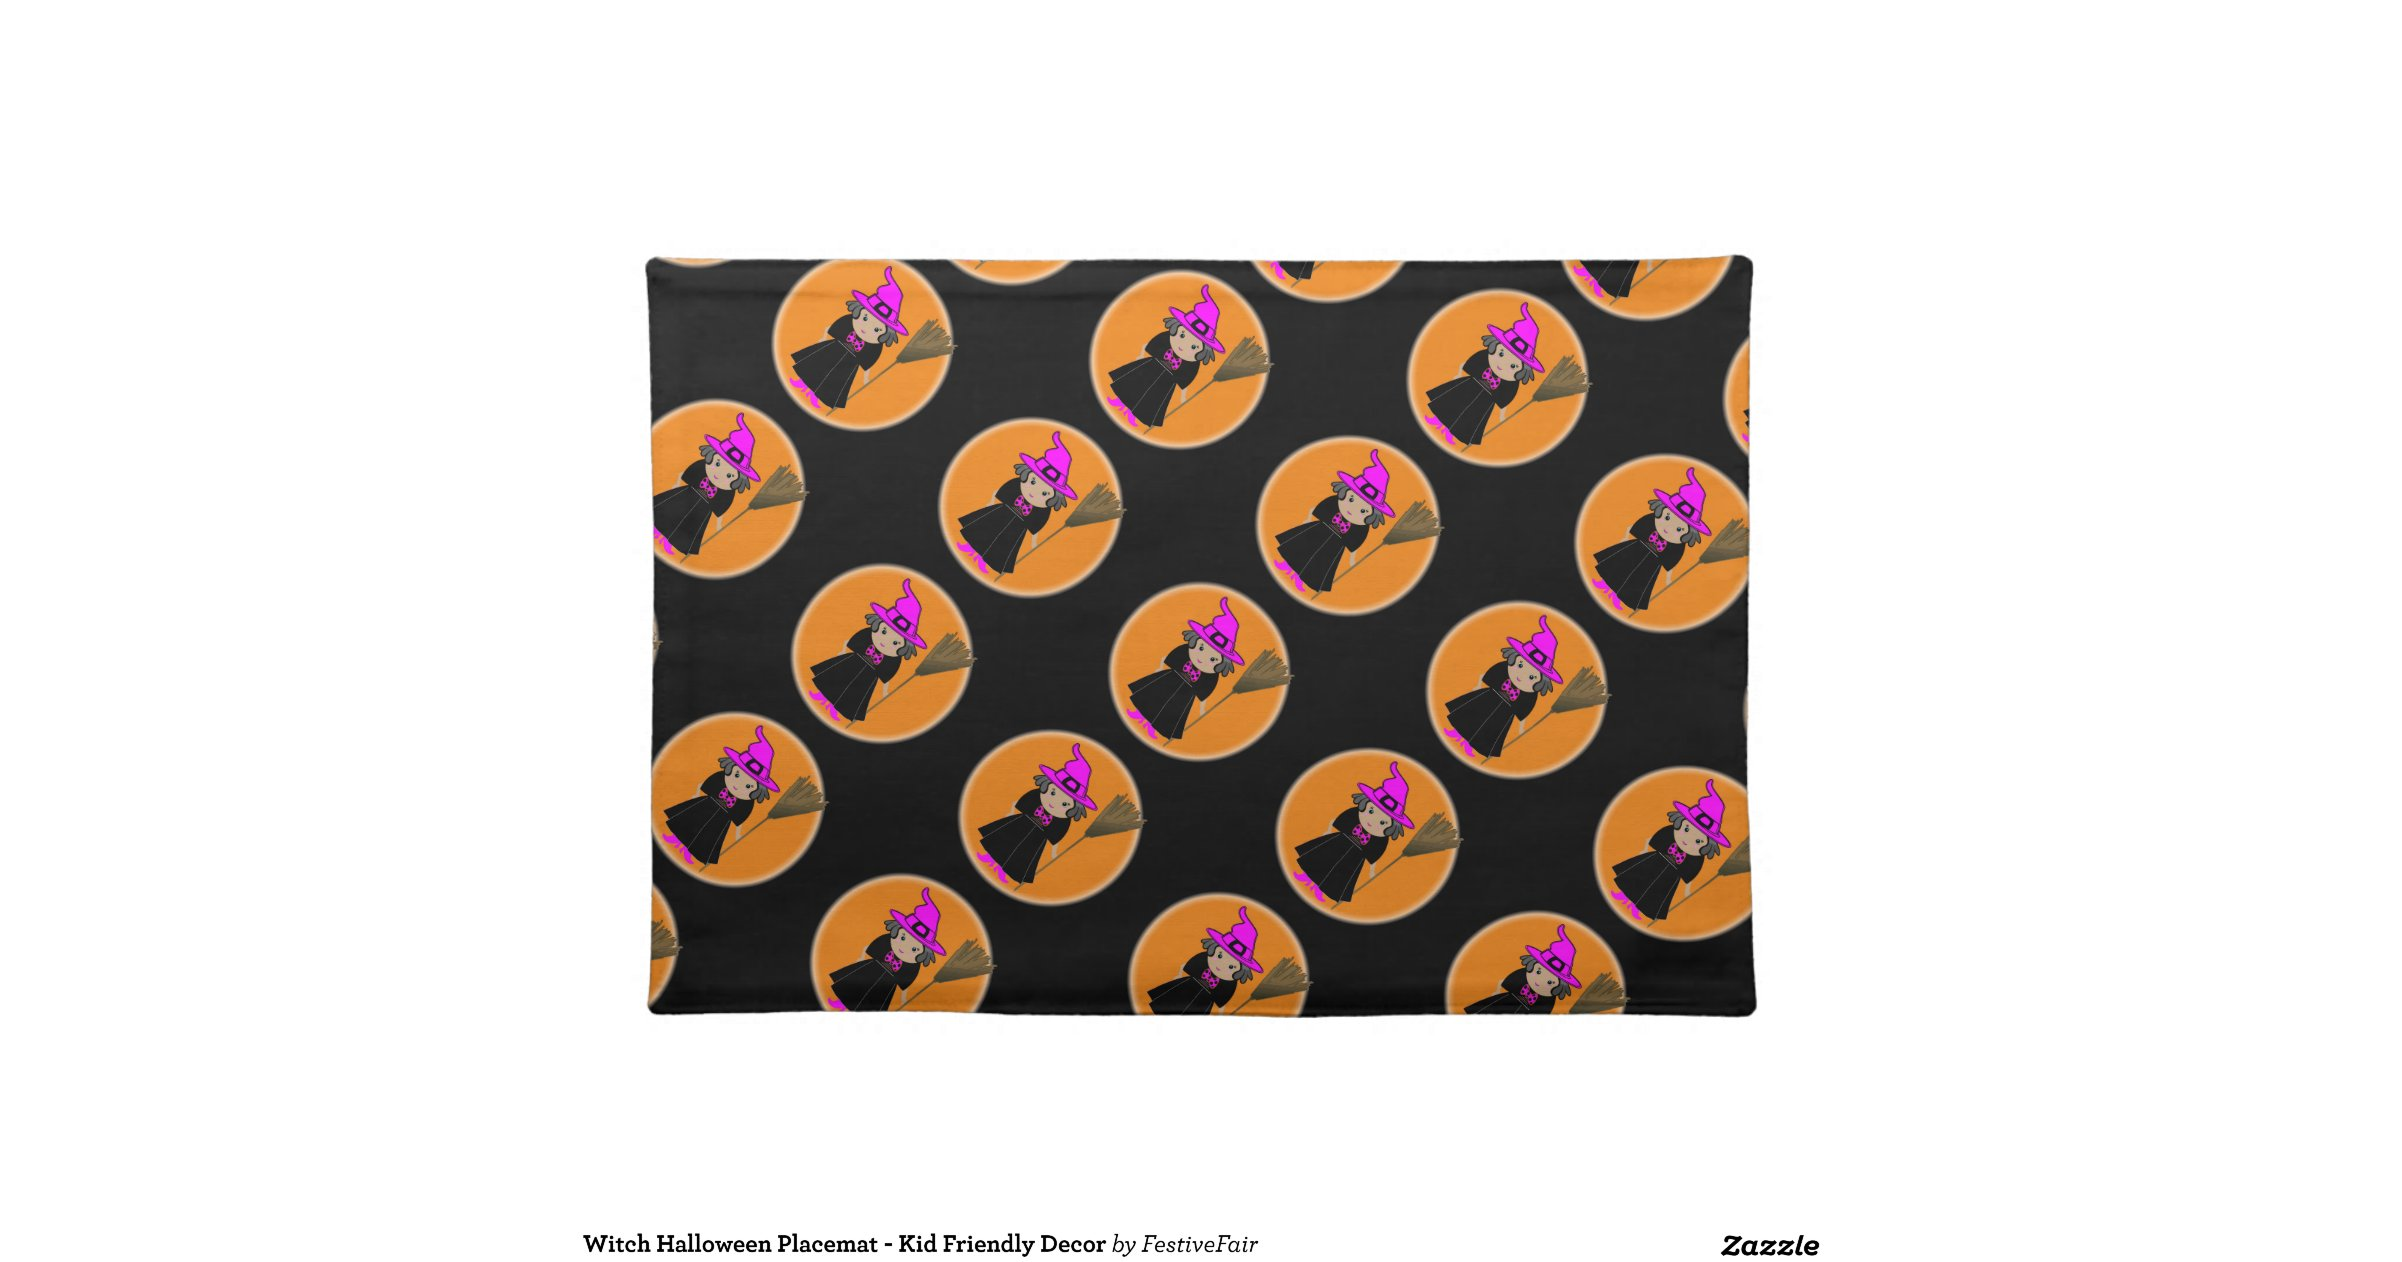 Dining Table Padding Images Dining Table Padding Images  : witchhalloweenplacematkidfriendlydecor rf3b8cb075379404584f0050048e6a13a2cfku8byvr1200jpgviewpadding5B04523809523809522C02C0 from www.favefaves.com size 2468 x 1296 jpeg 237kB